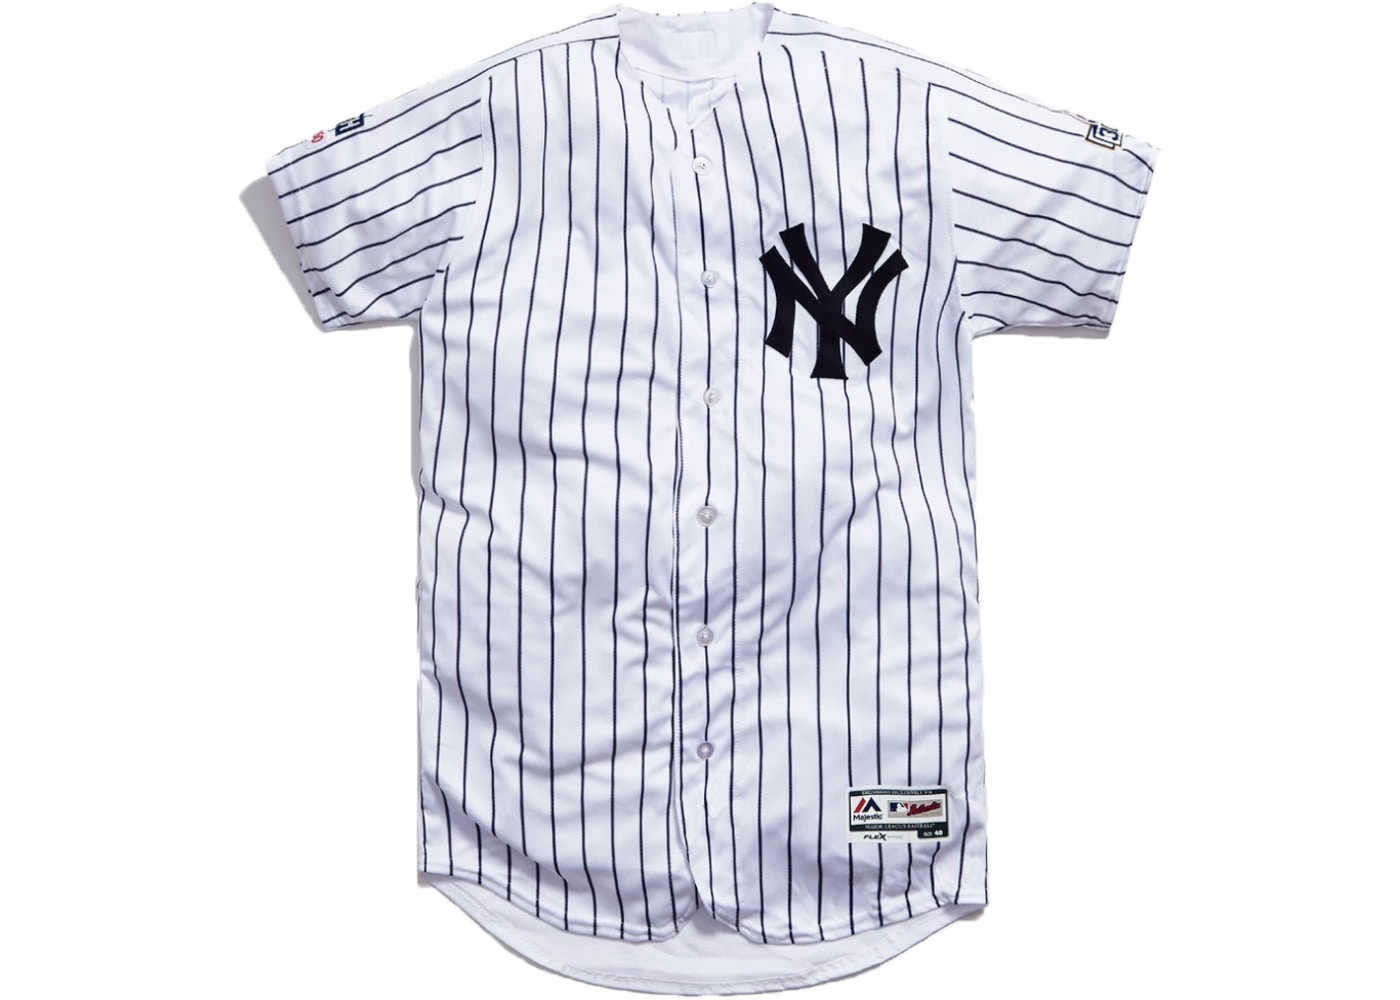 new arrival a5593 4be4e Kith x CC Sabathia x MLB Home Jersey White/Navy